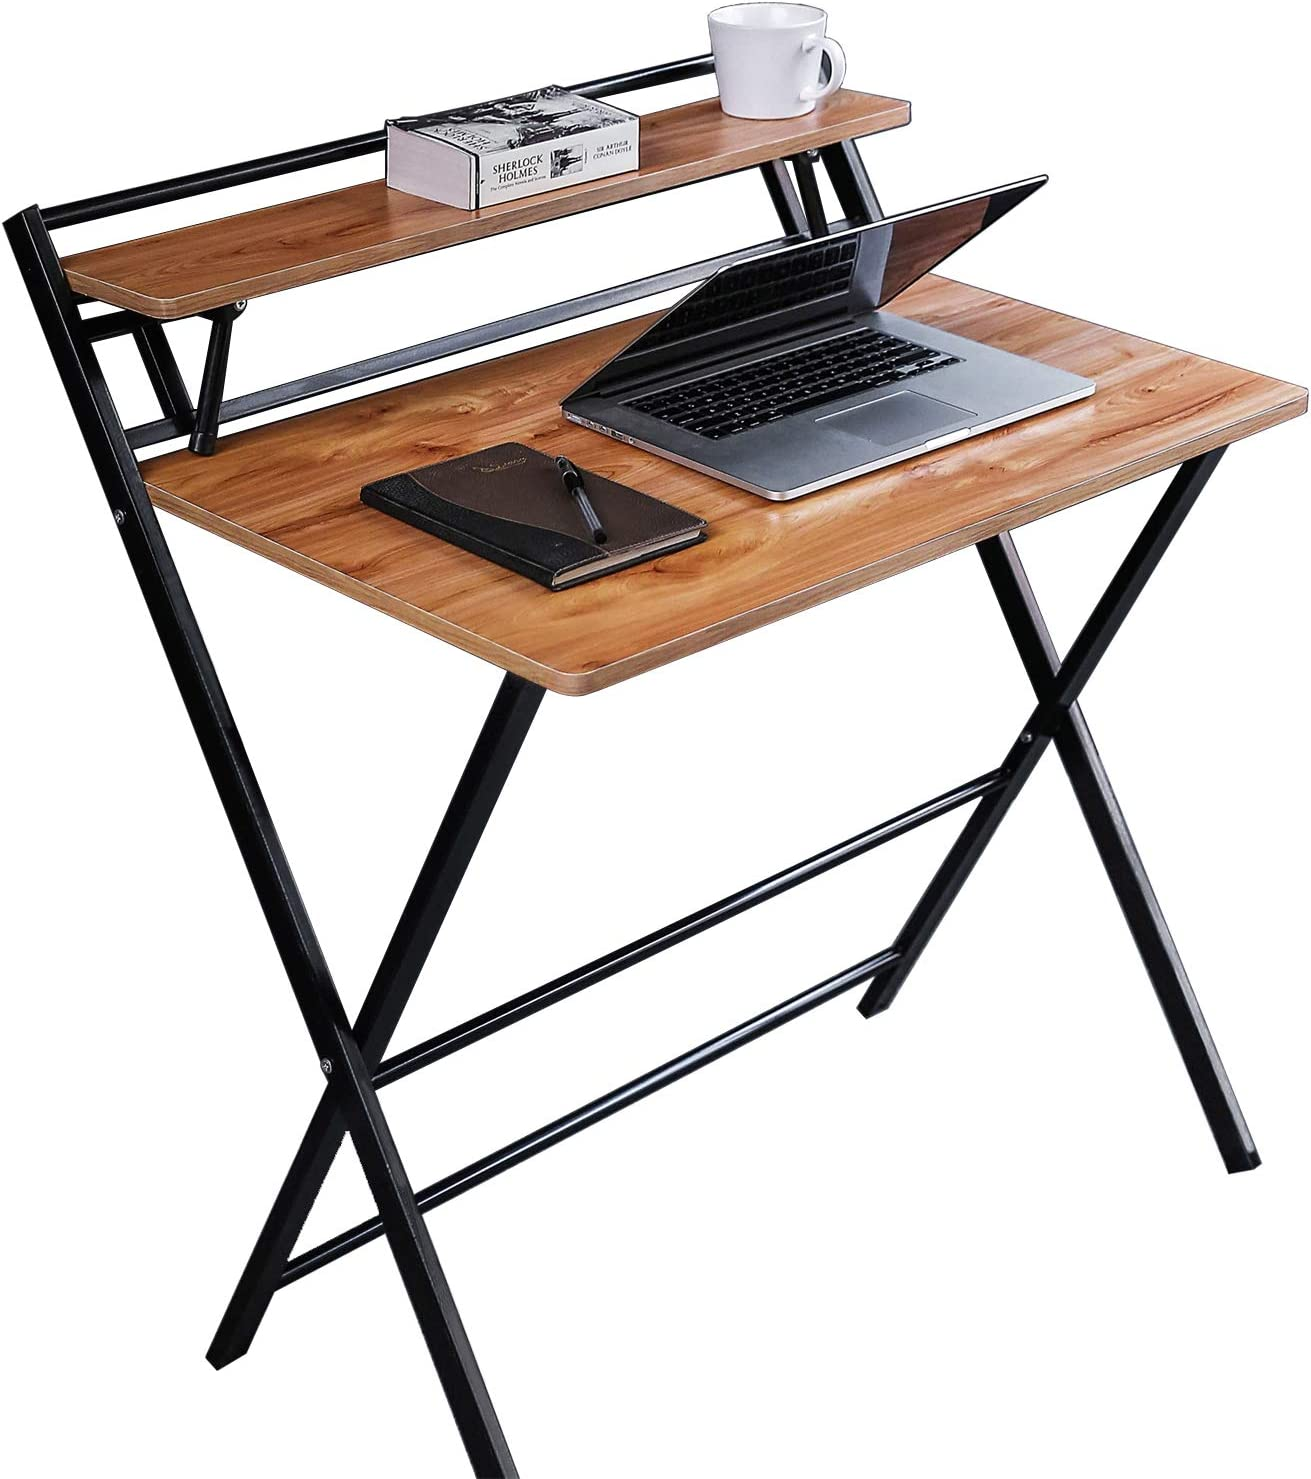 JIWU 49-Style Folding Desk for Small Space, Home Corner Desks Simple  Computer Desk with Shelf, Folding Laptop Table